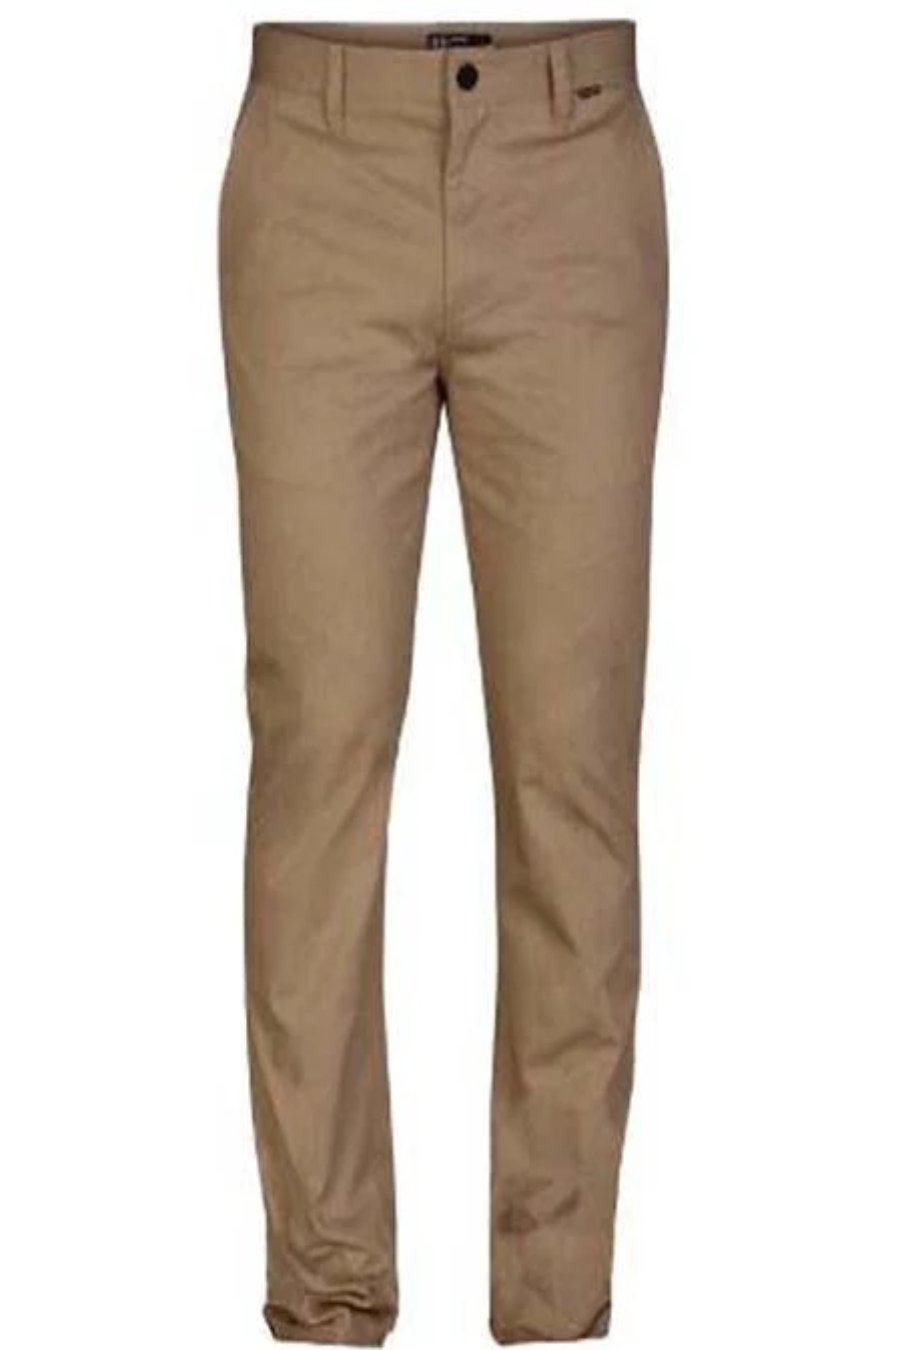 HURLEY One & Only Stretch Chino Pant (Rye)